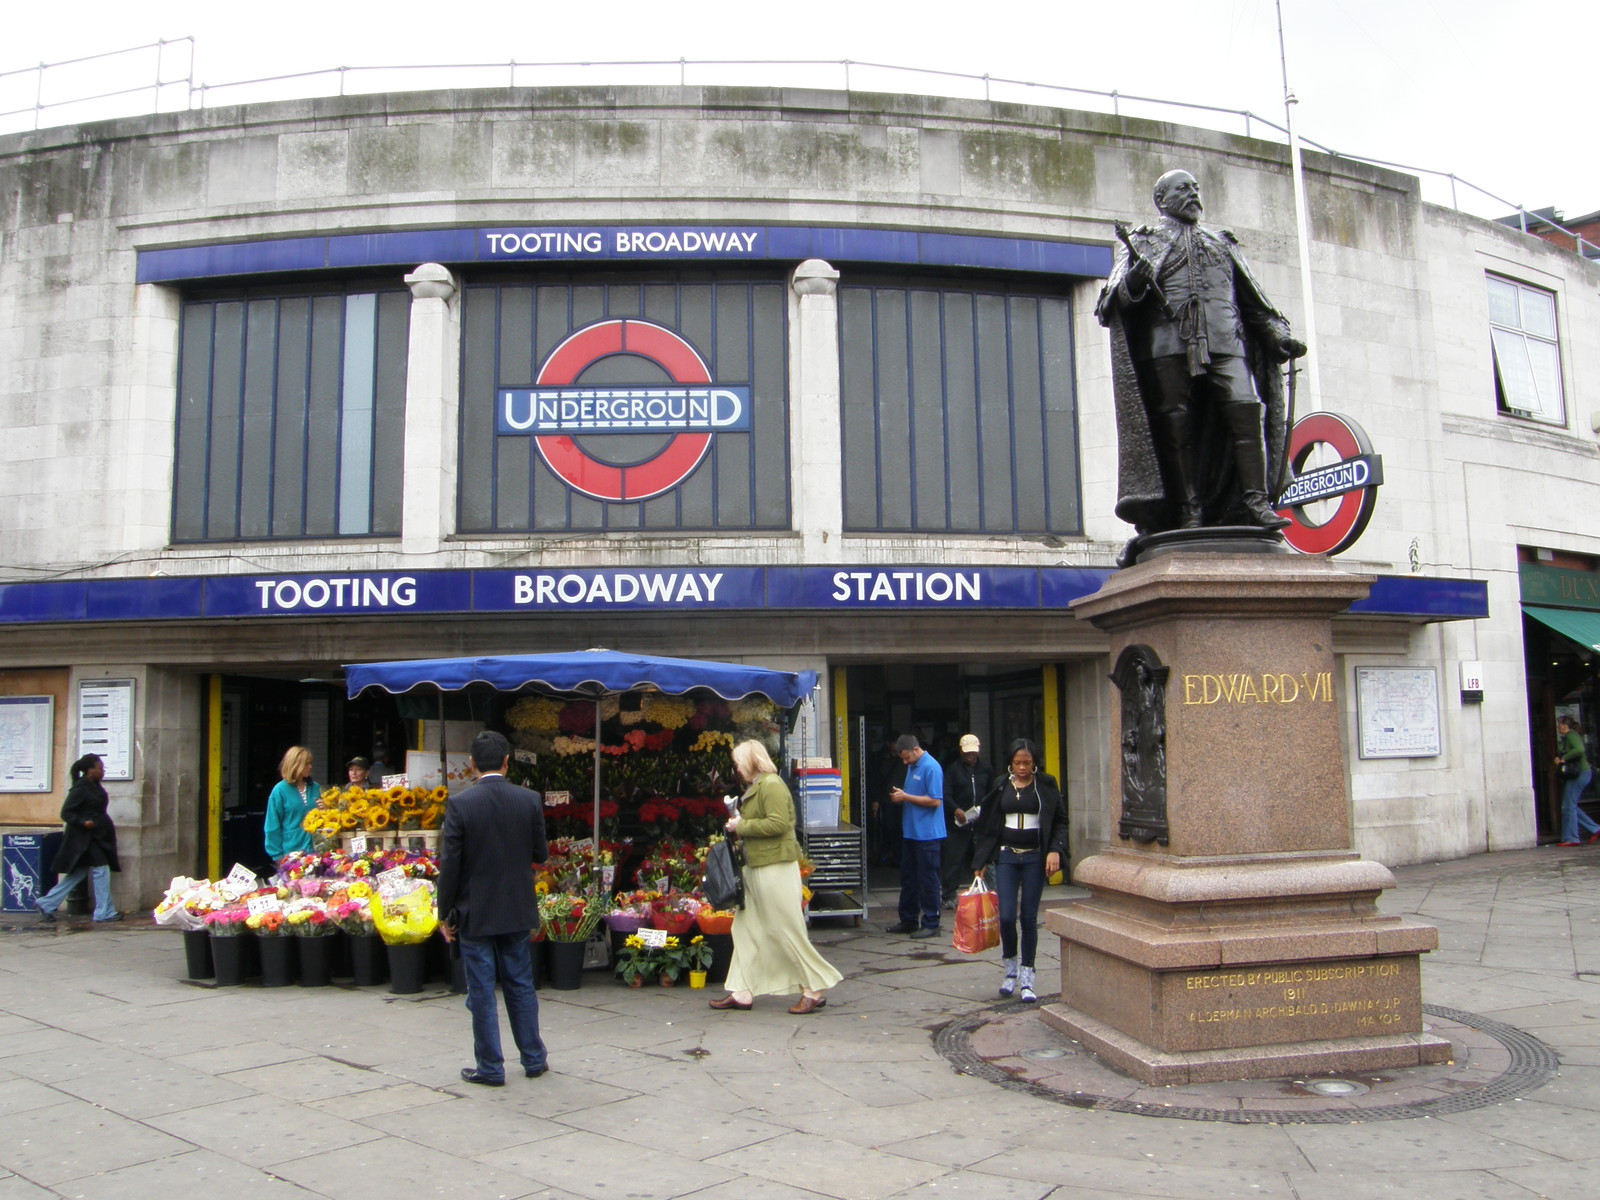 Tooting Broadway station